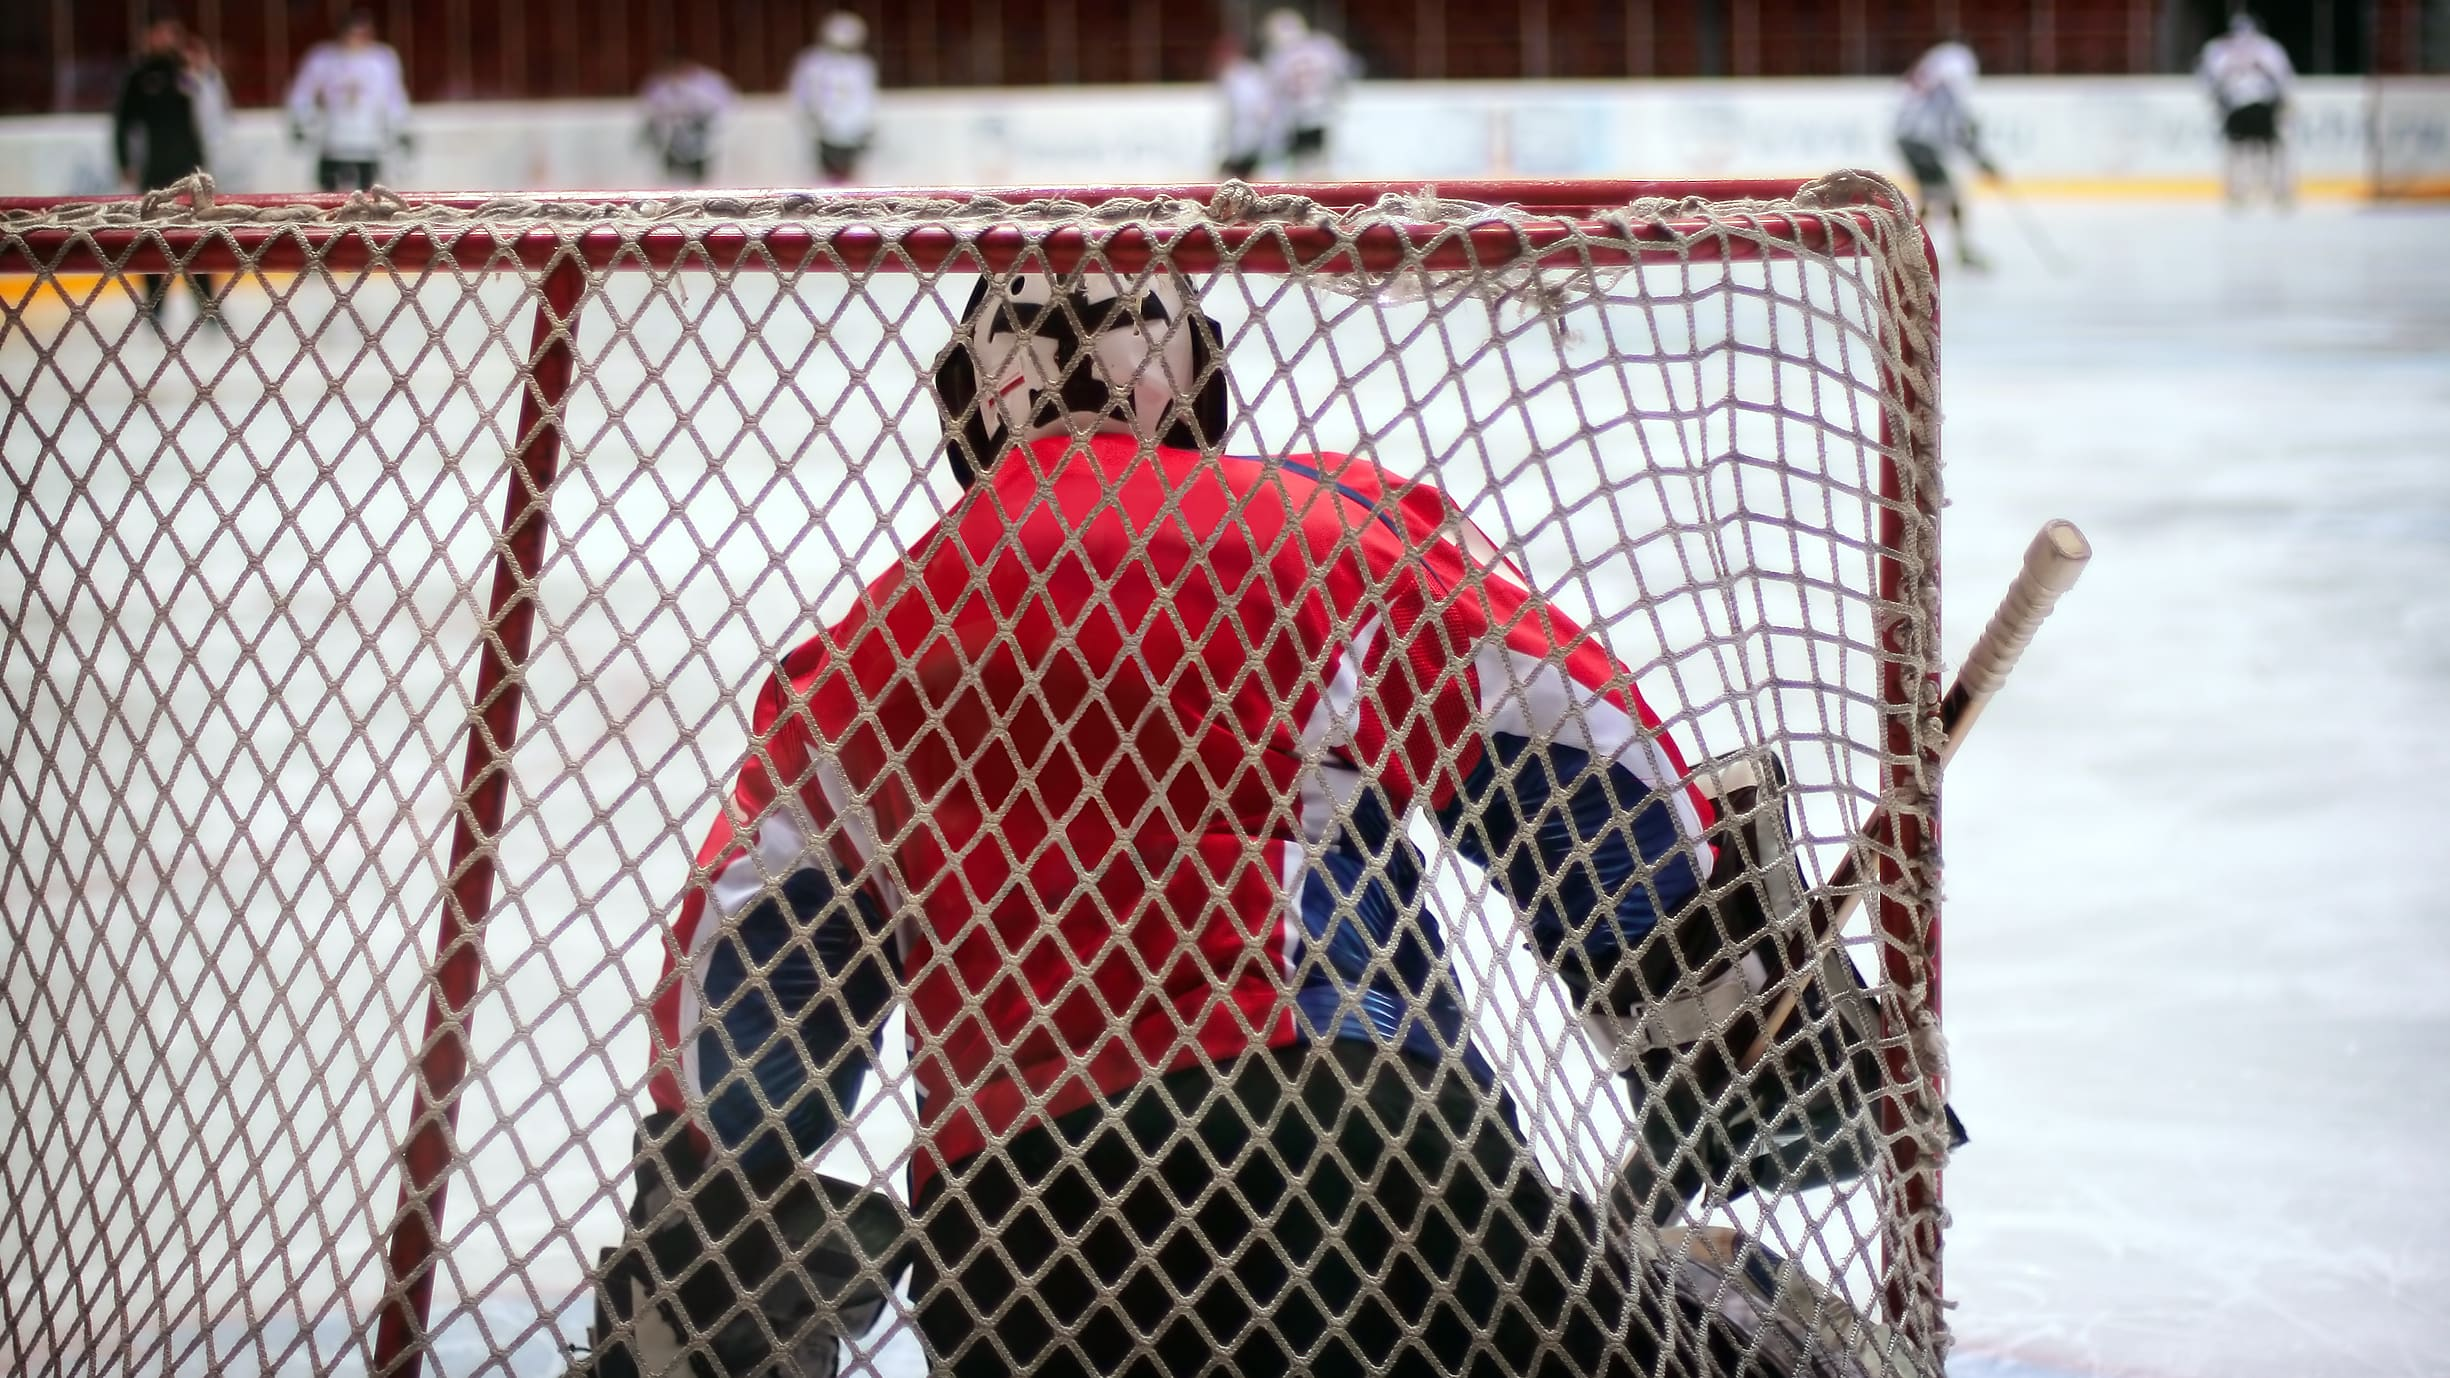 A goalie is at risk of suffering from a concussion during a game.